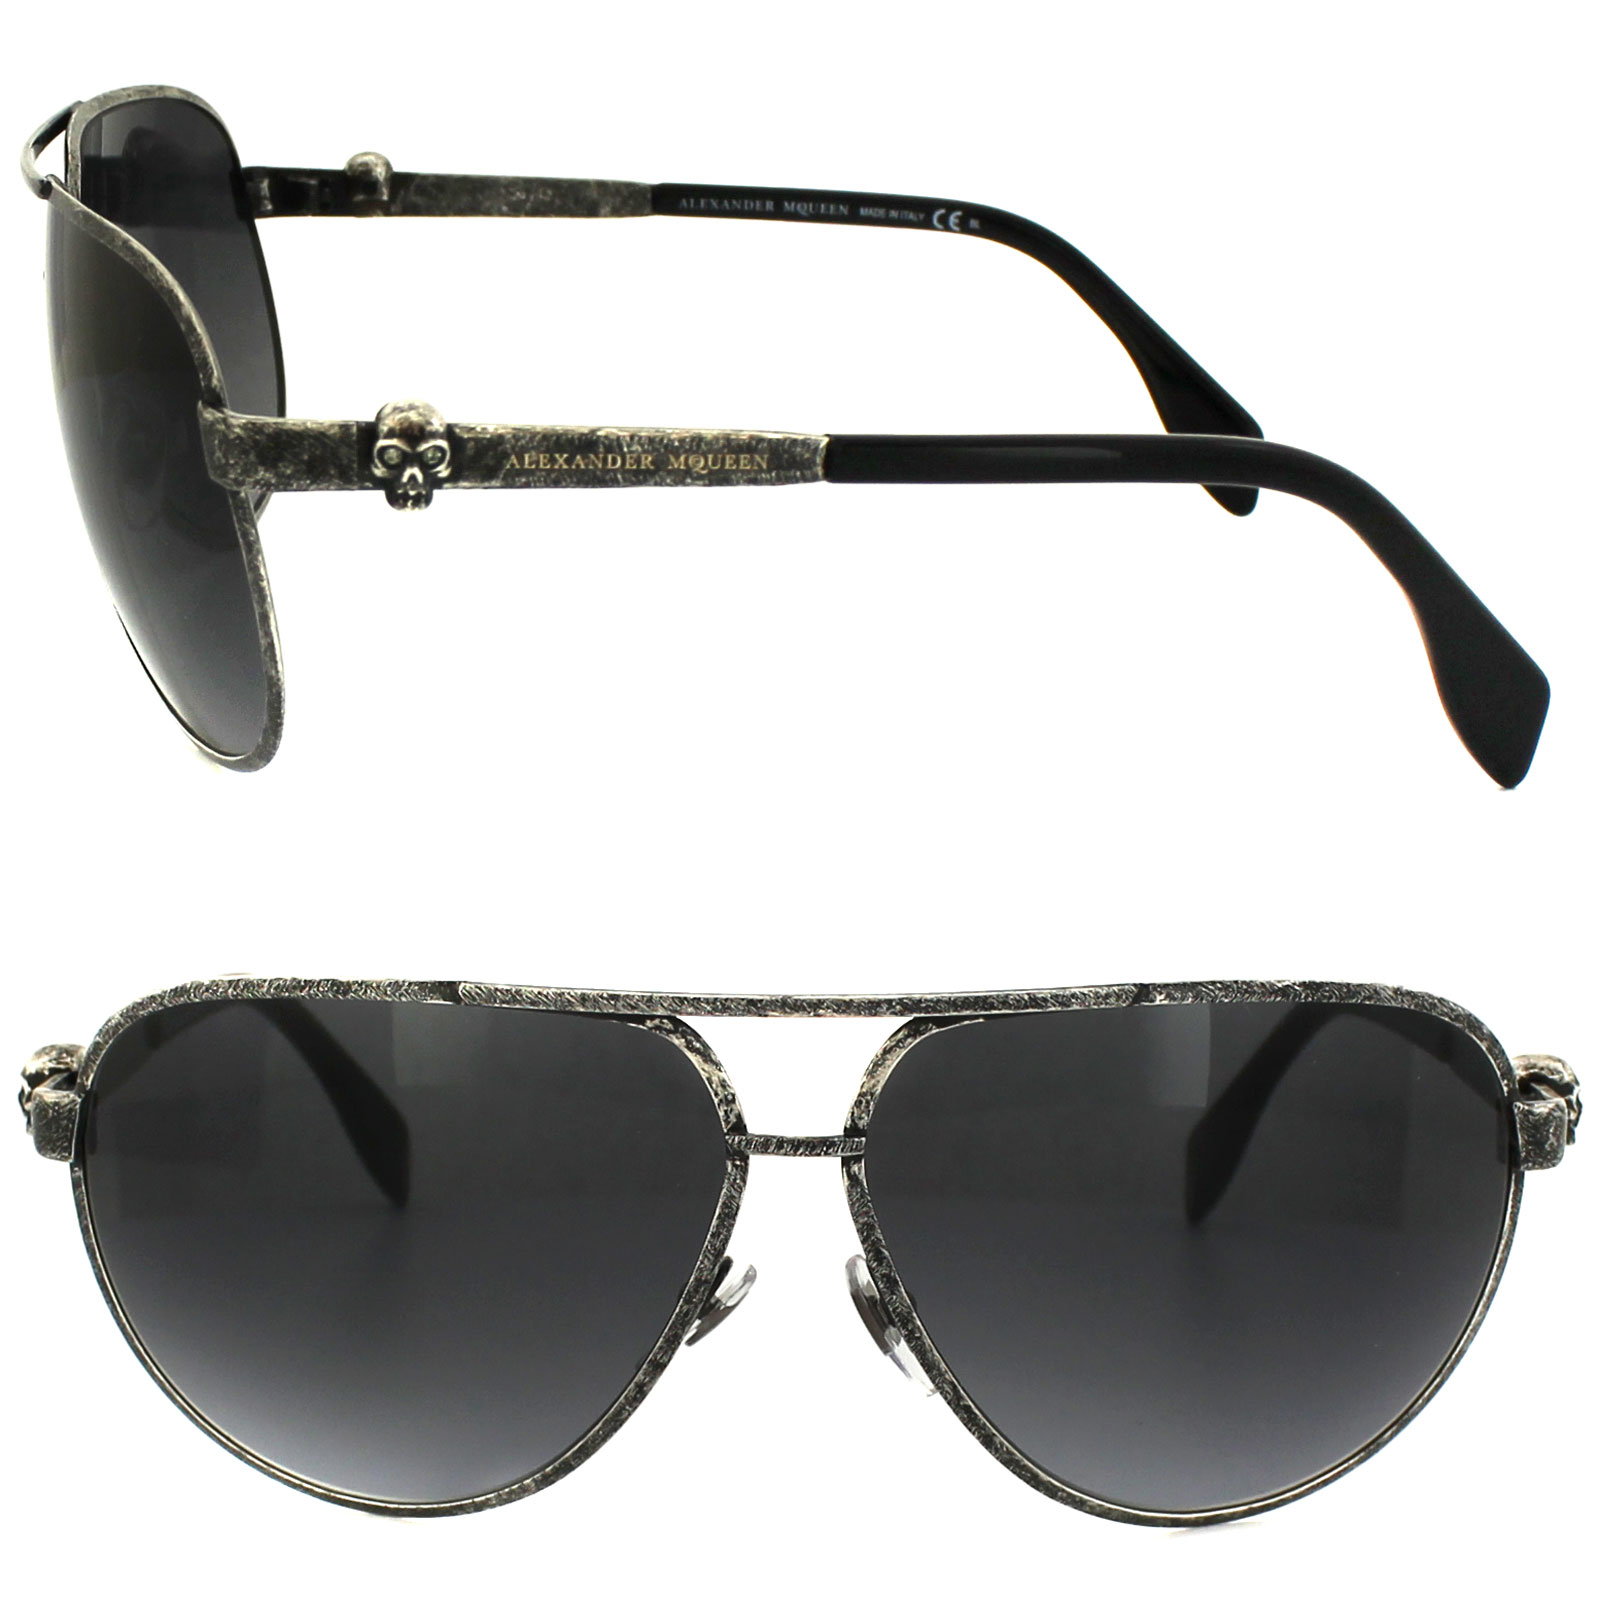 Alexander Mcqueen Sunglasses  alexander mcqueen sunglasses 4156 s obr hd oxidized ruthenium grey